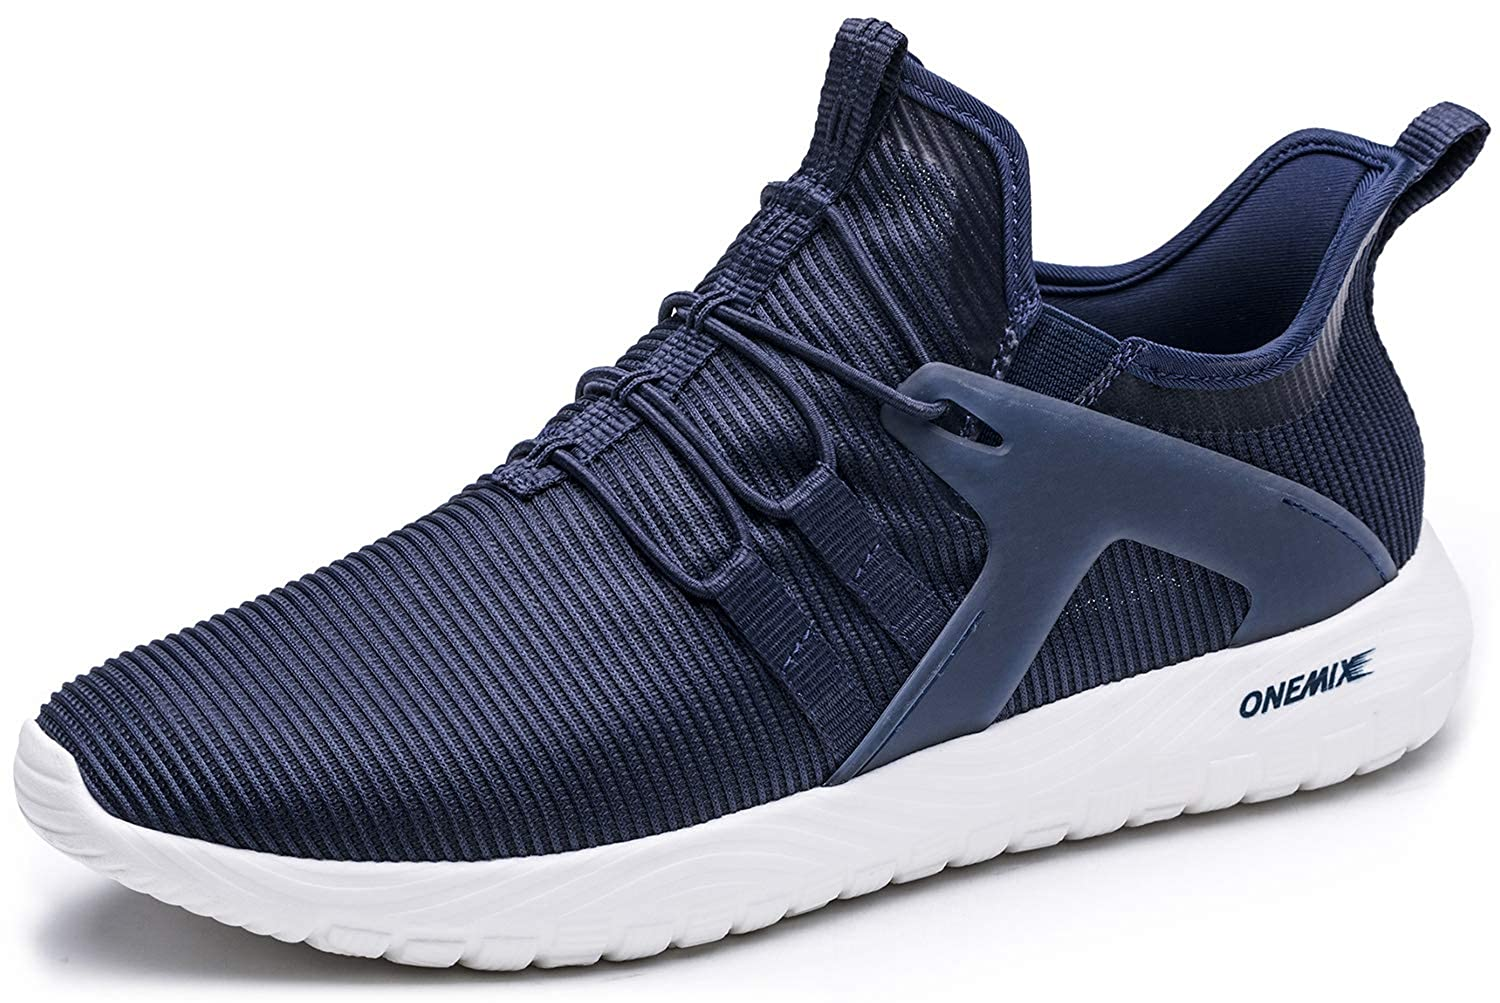 ONEMIX Slip-On Running Shoes Men - Lightweight Casual Sports Cushioning Sneakers